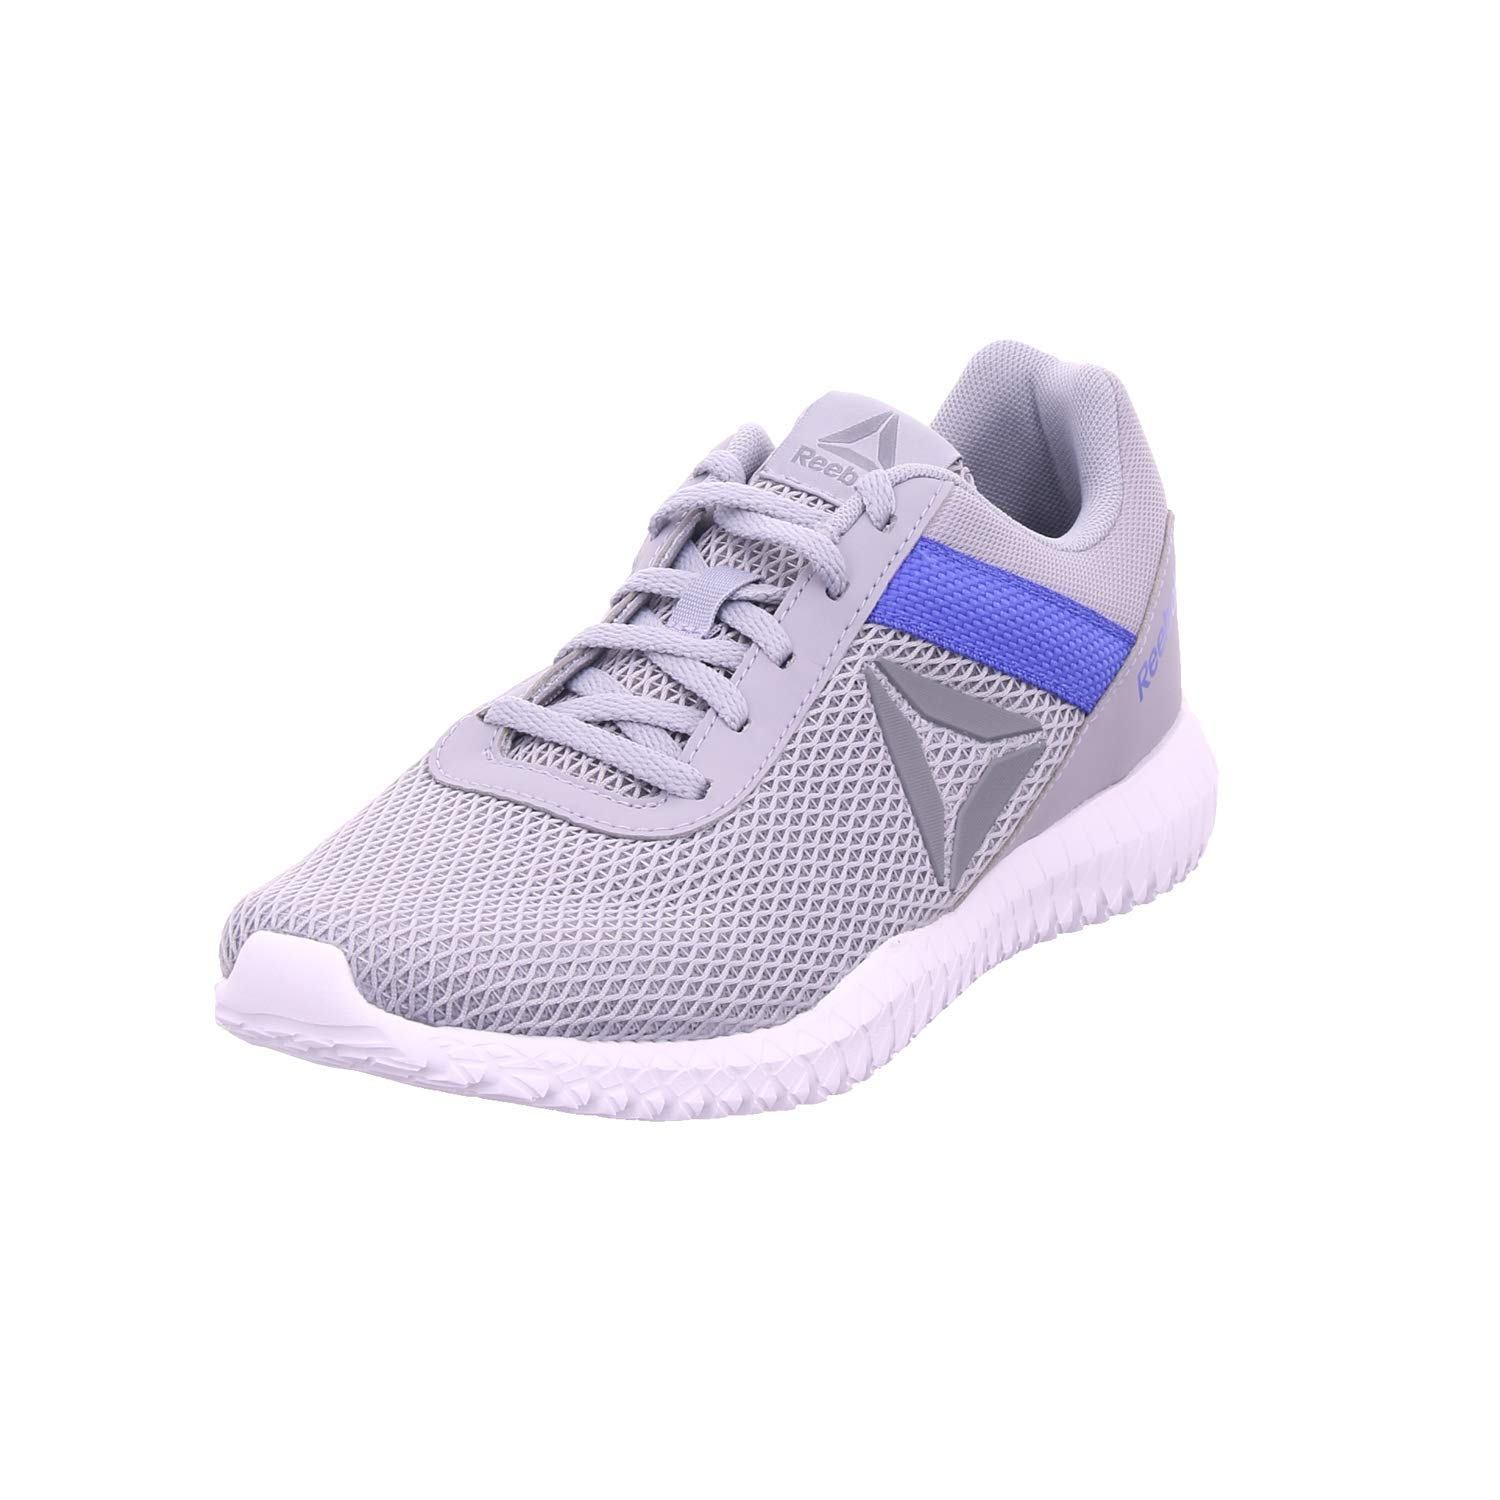 Mehrfarbig (Cool Shadow Cold grau Weiß Crushed Coba 000) Reebok Herren Flexagon Energy Tr Multisport Indoor Schuhe